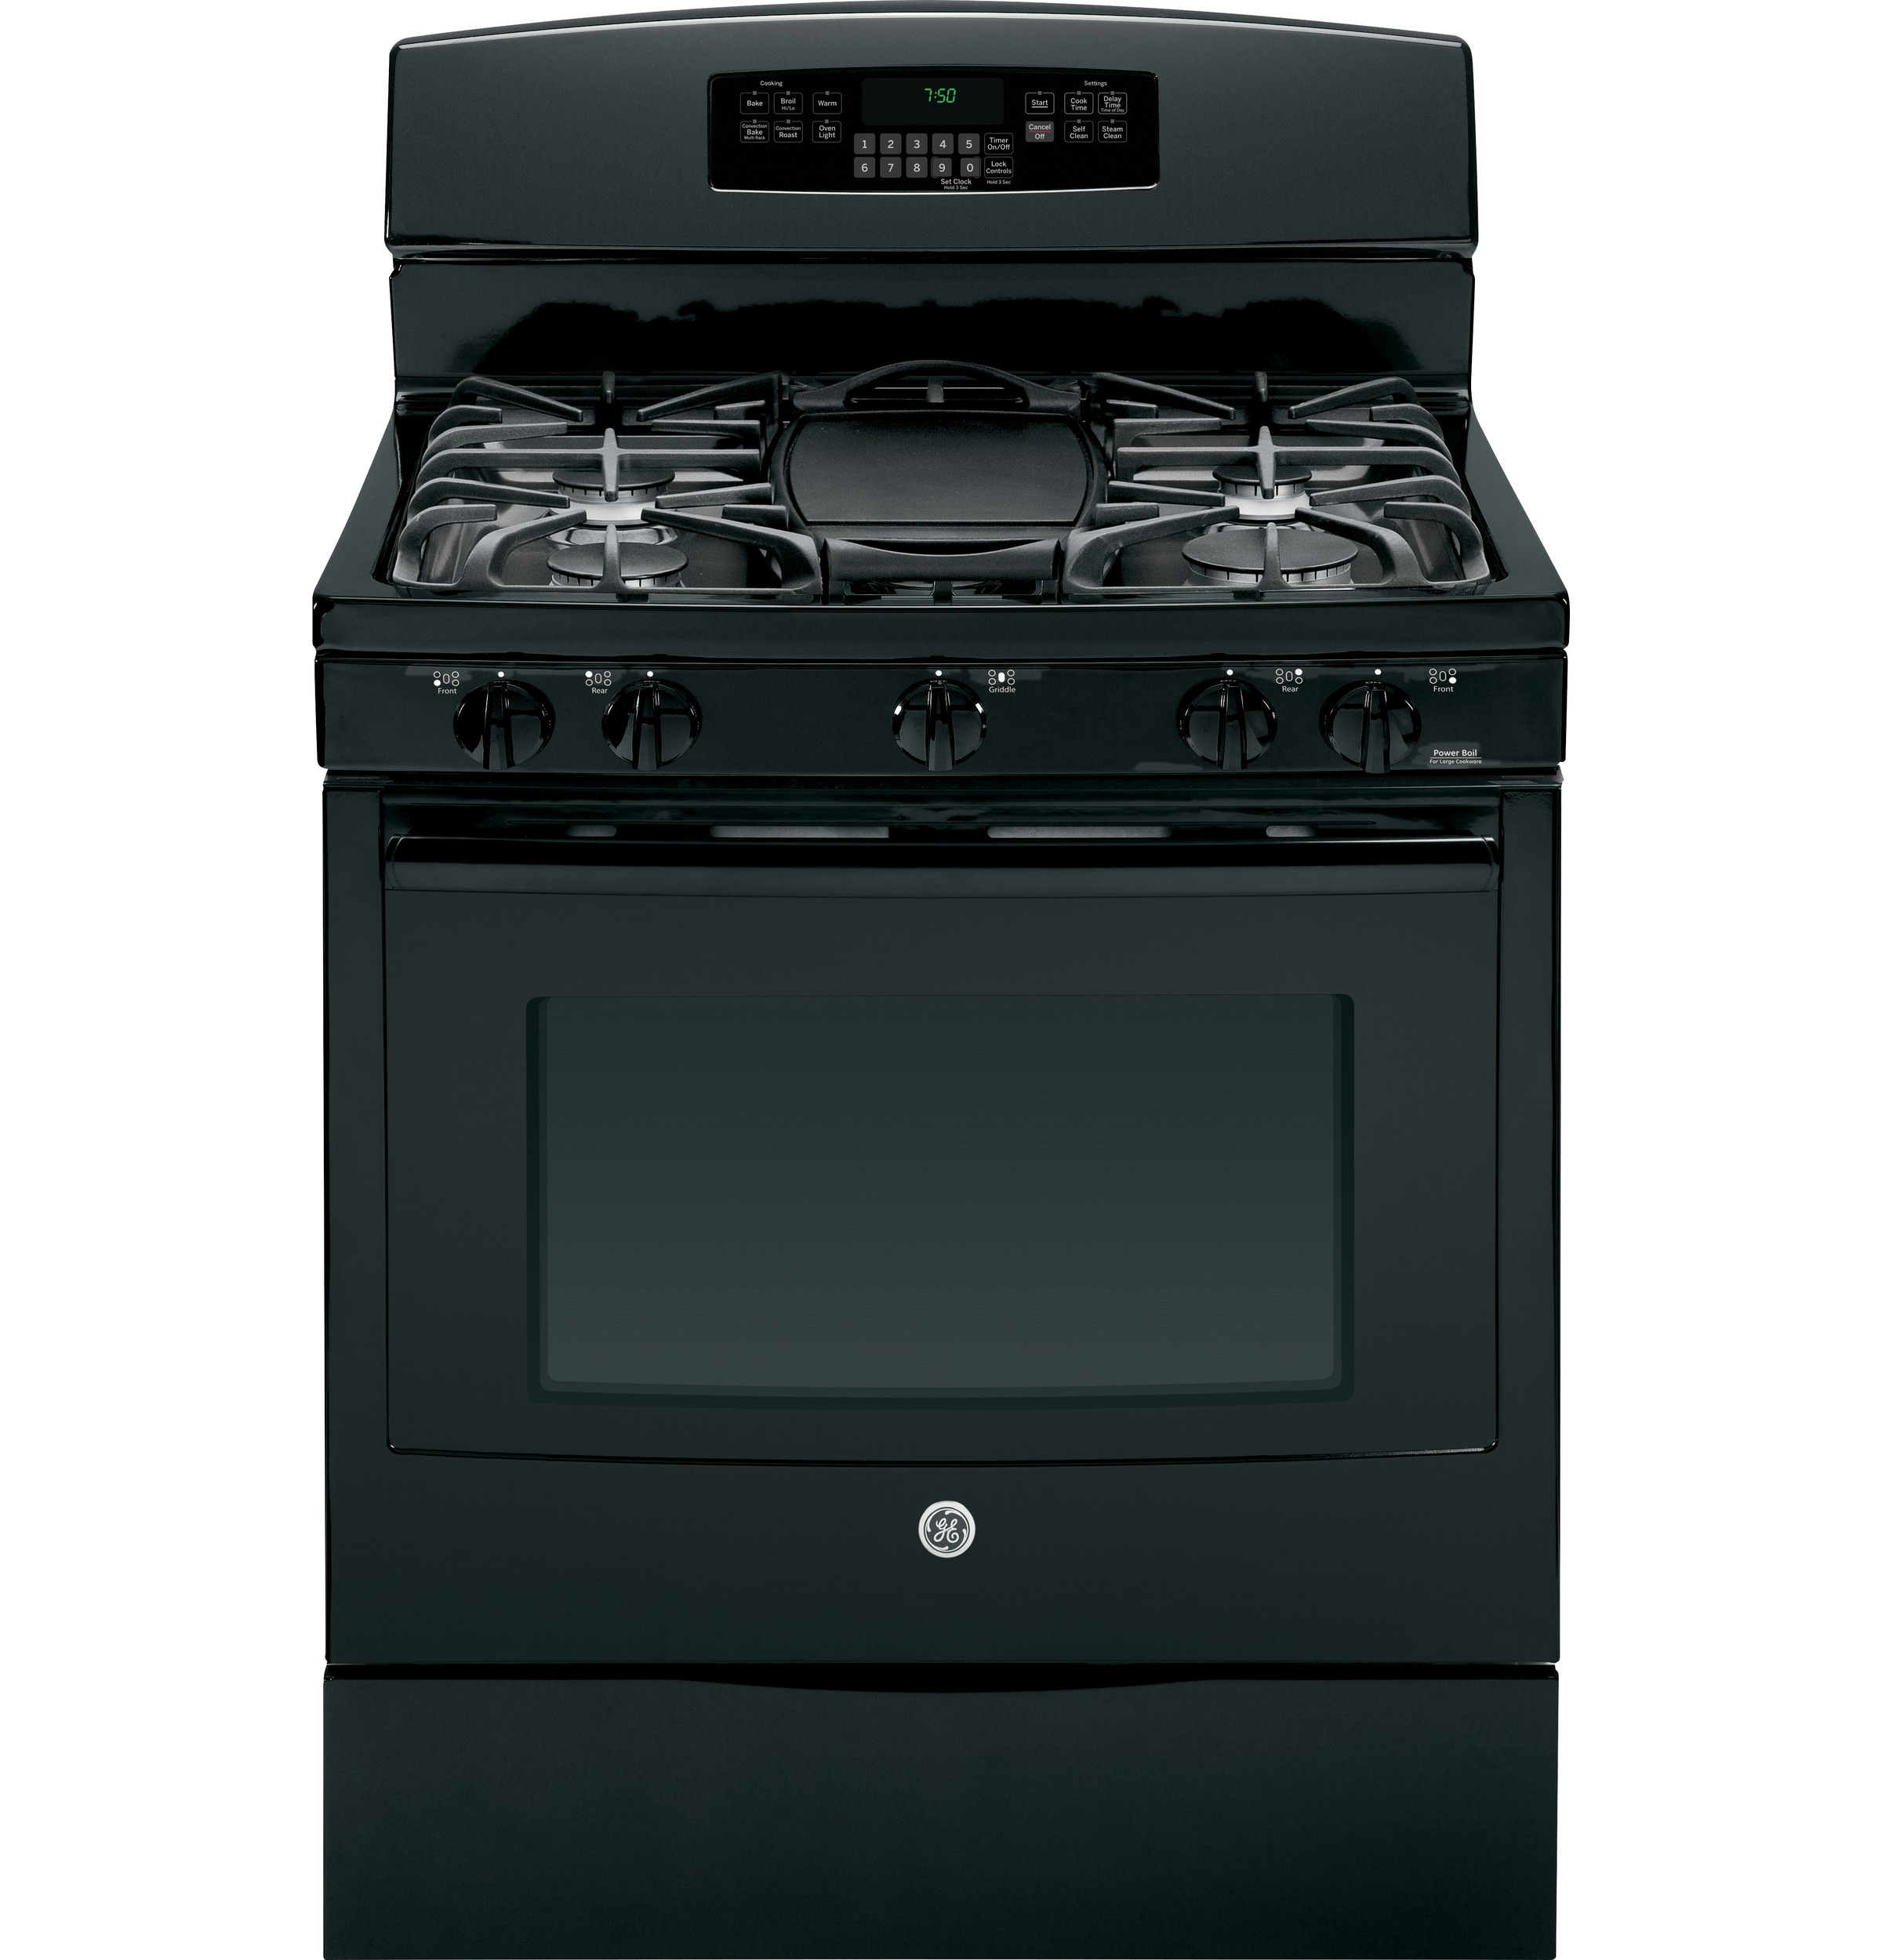 GE Appliances 5.6 cu. ft. Gas Range w/ Convection - Black